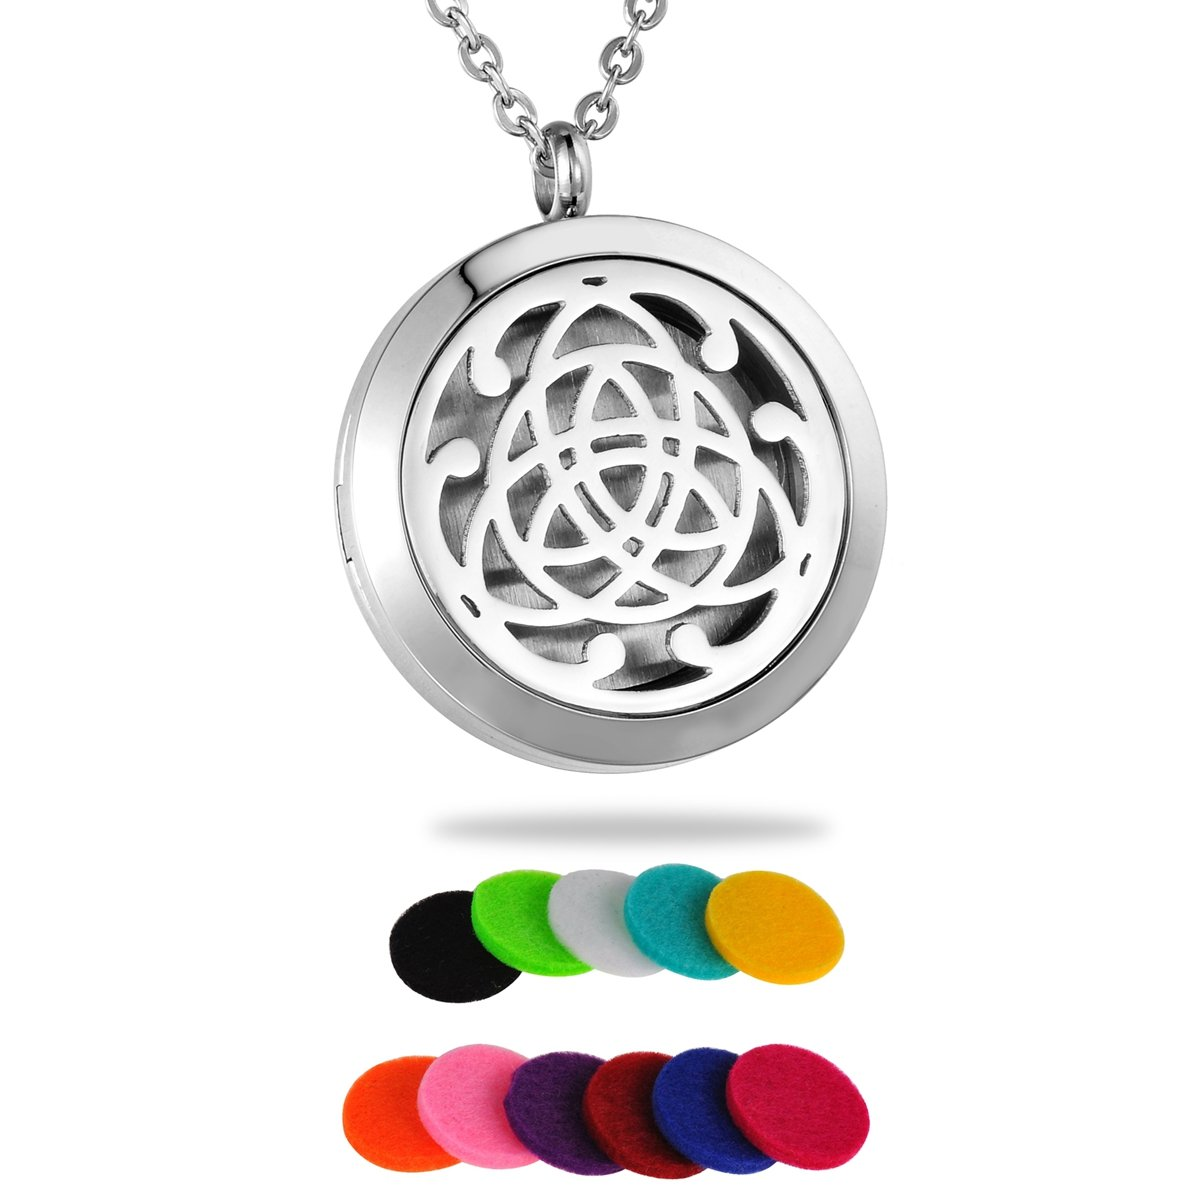 HooAMI Celtic Knot Aromatherapy Essential Oil Diffuser Necklace - Stainless Steel Locket Pendant TY BETY102397